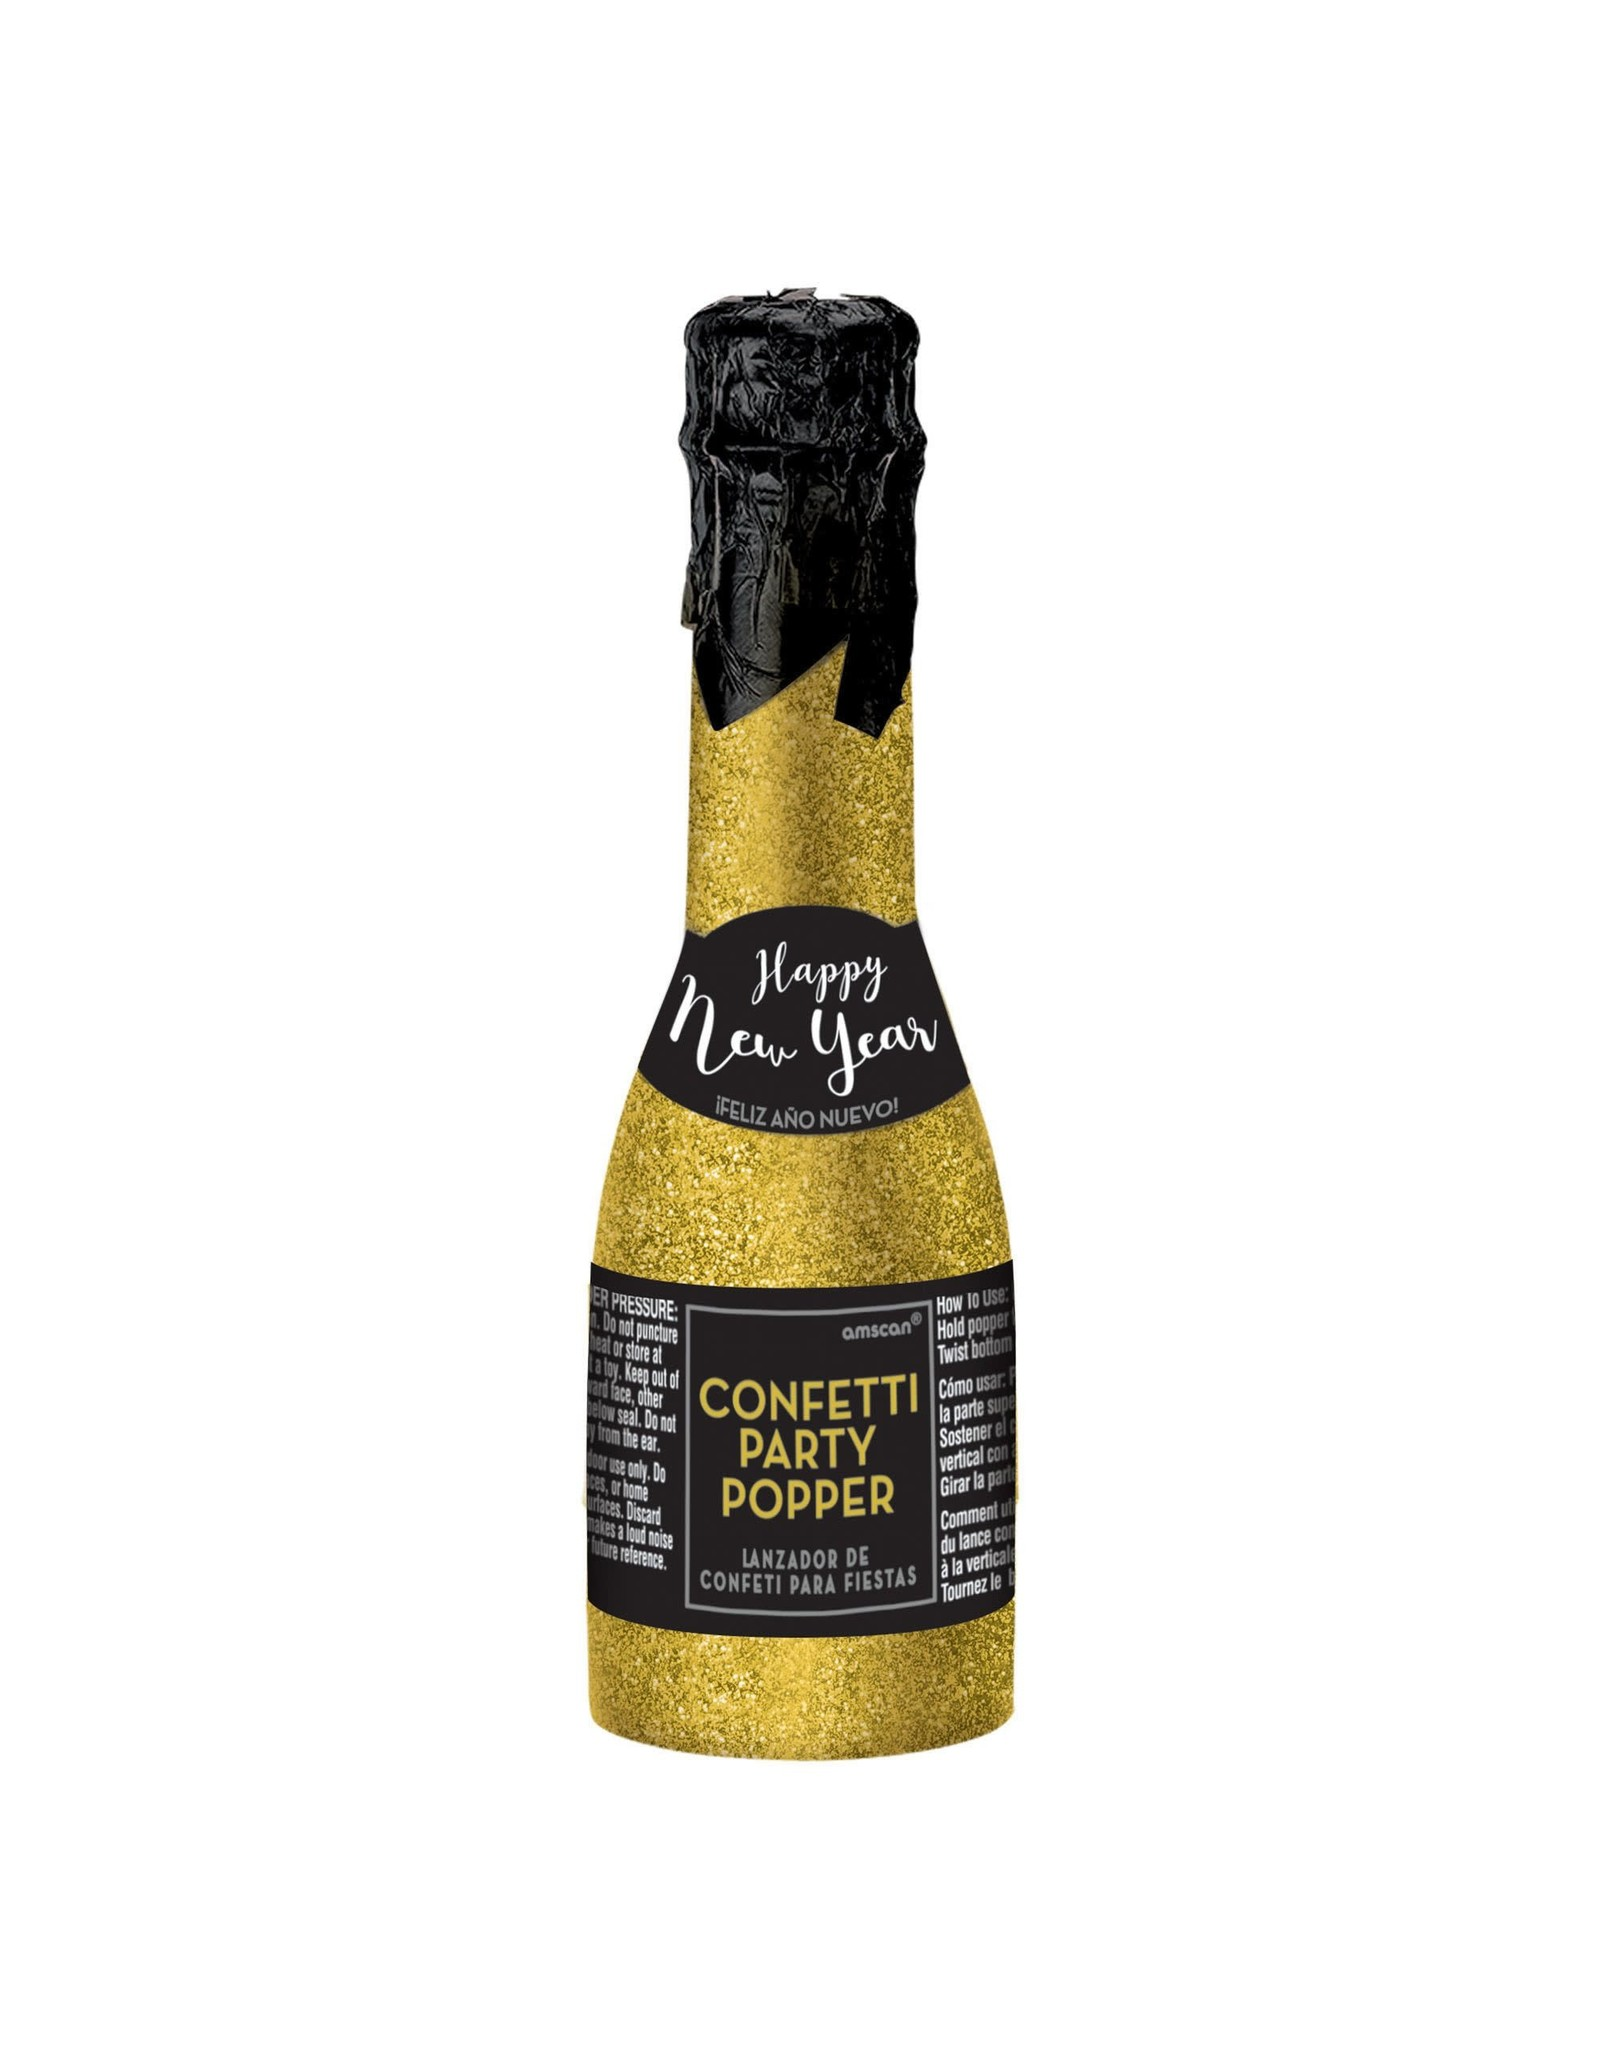 Amscan Champagne Bottle Party Popper